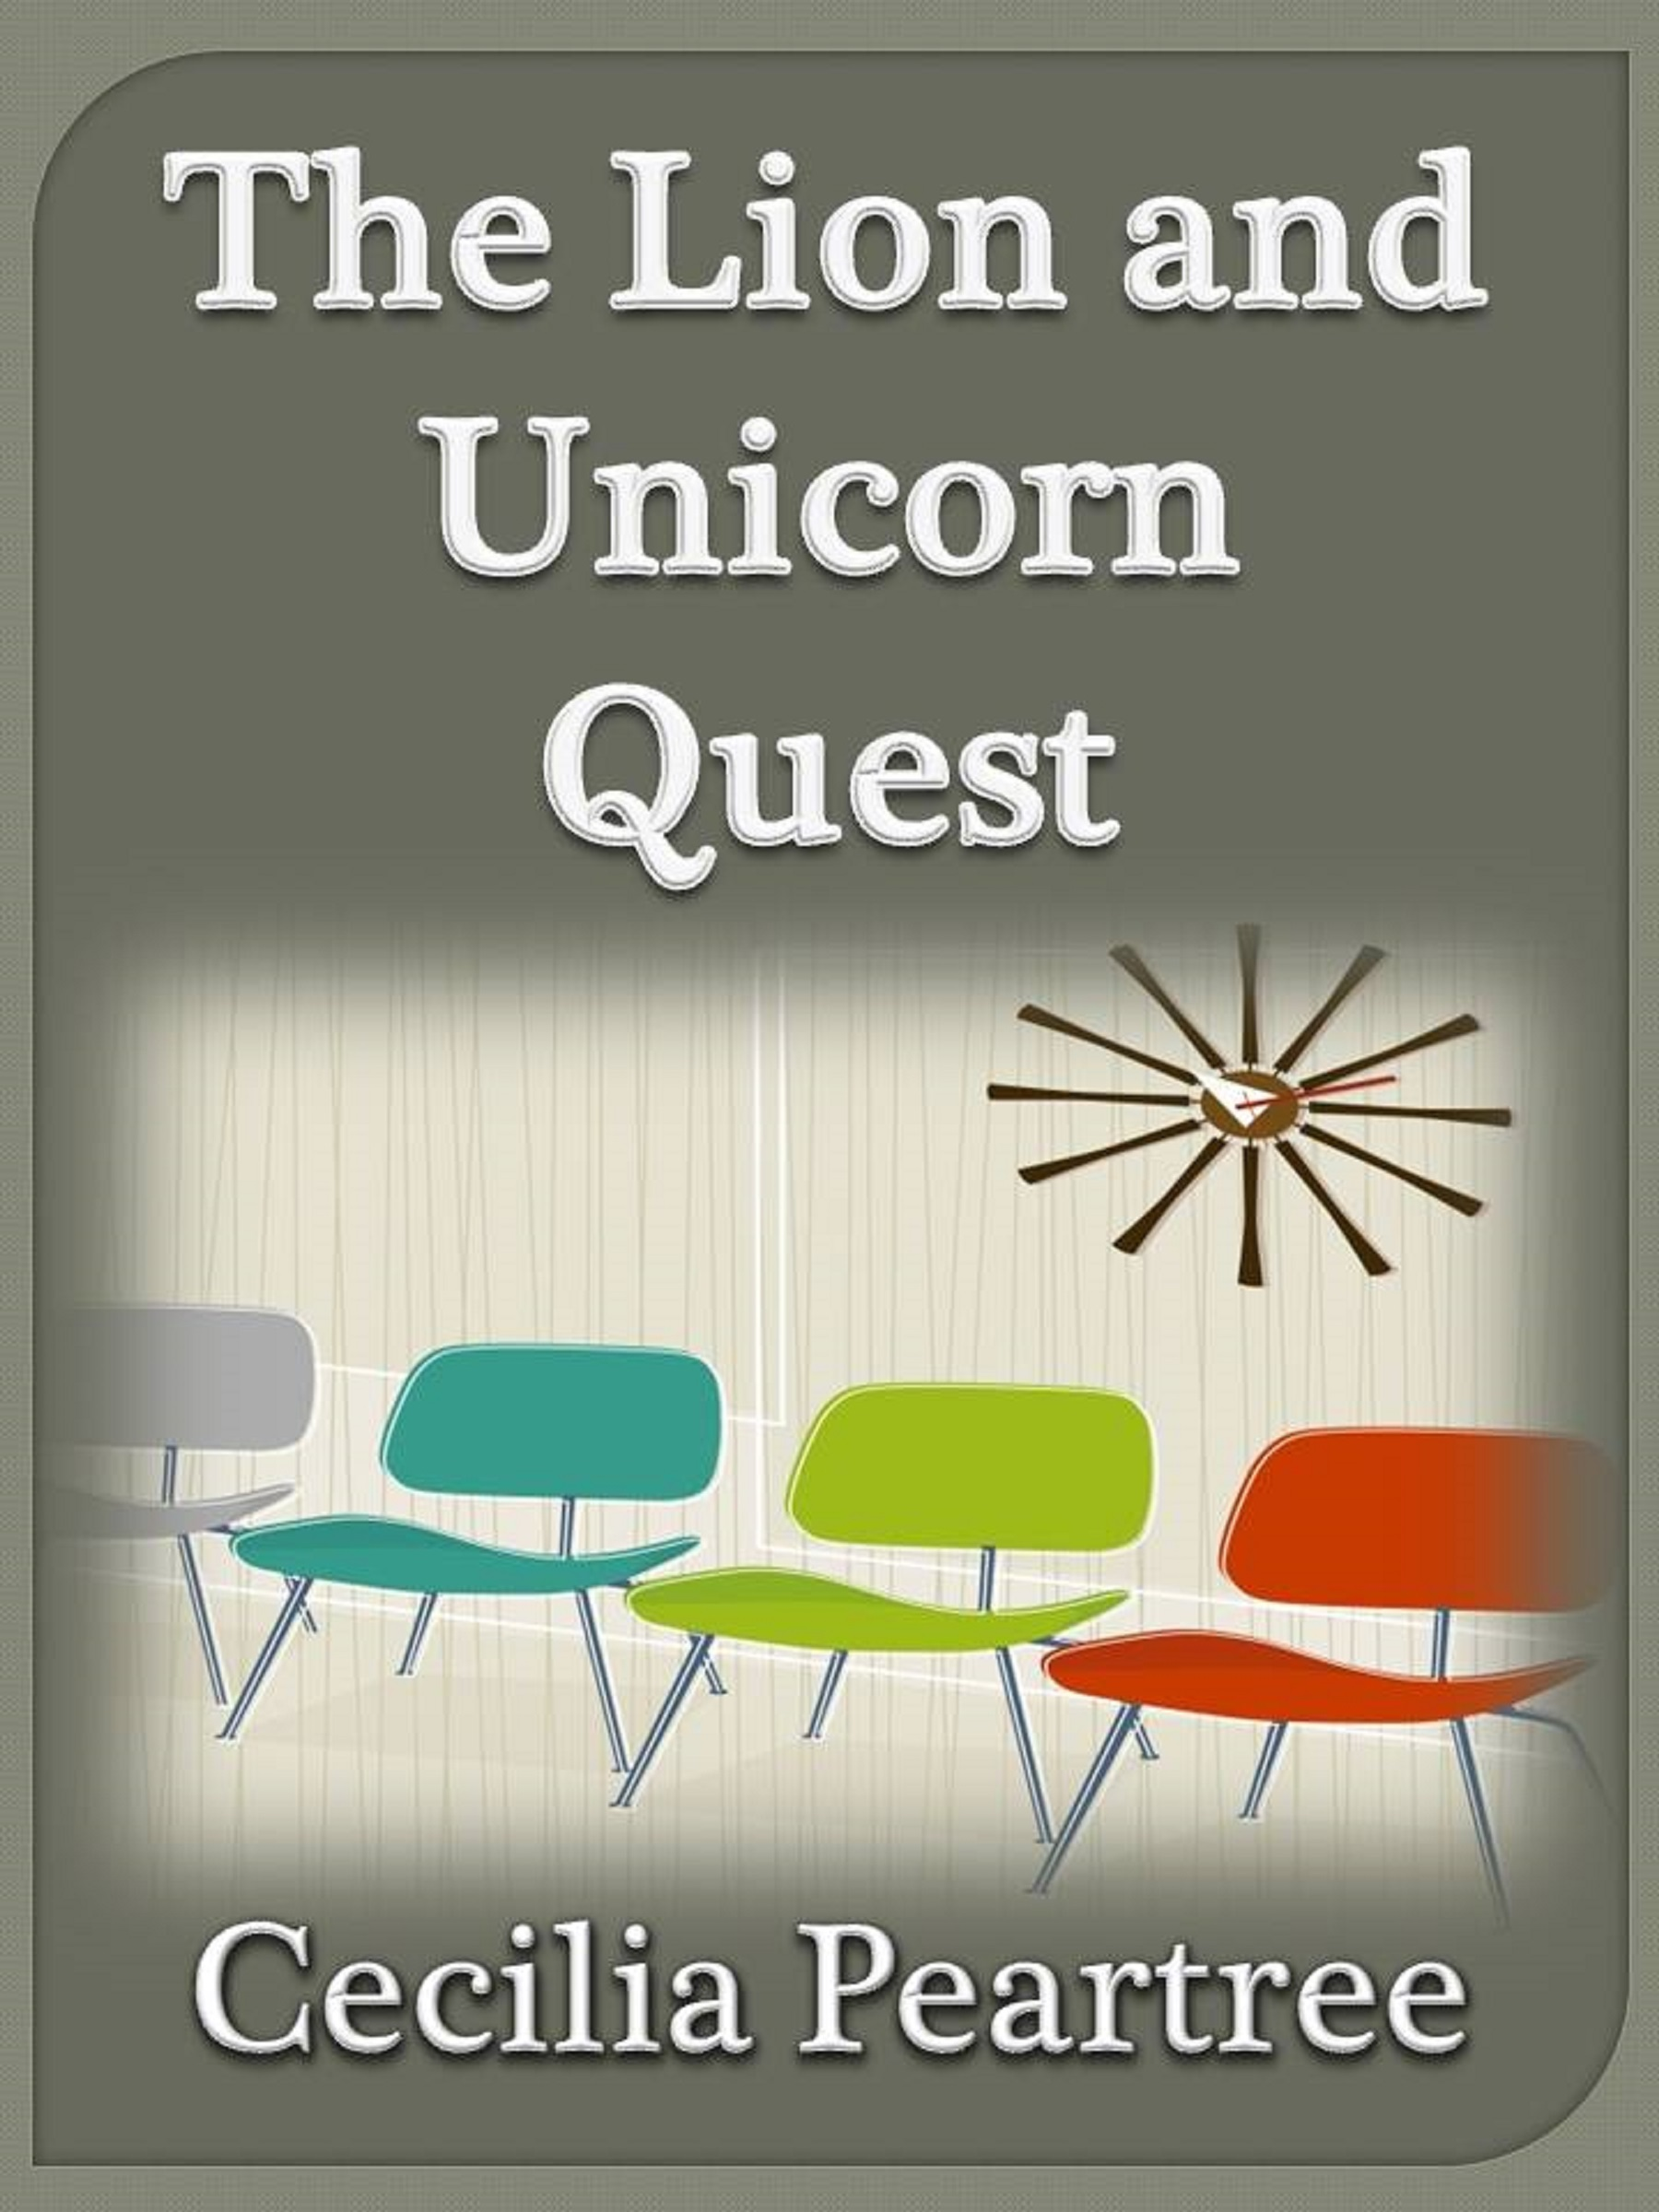 The Lion and Unicorn Quest